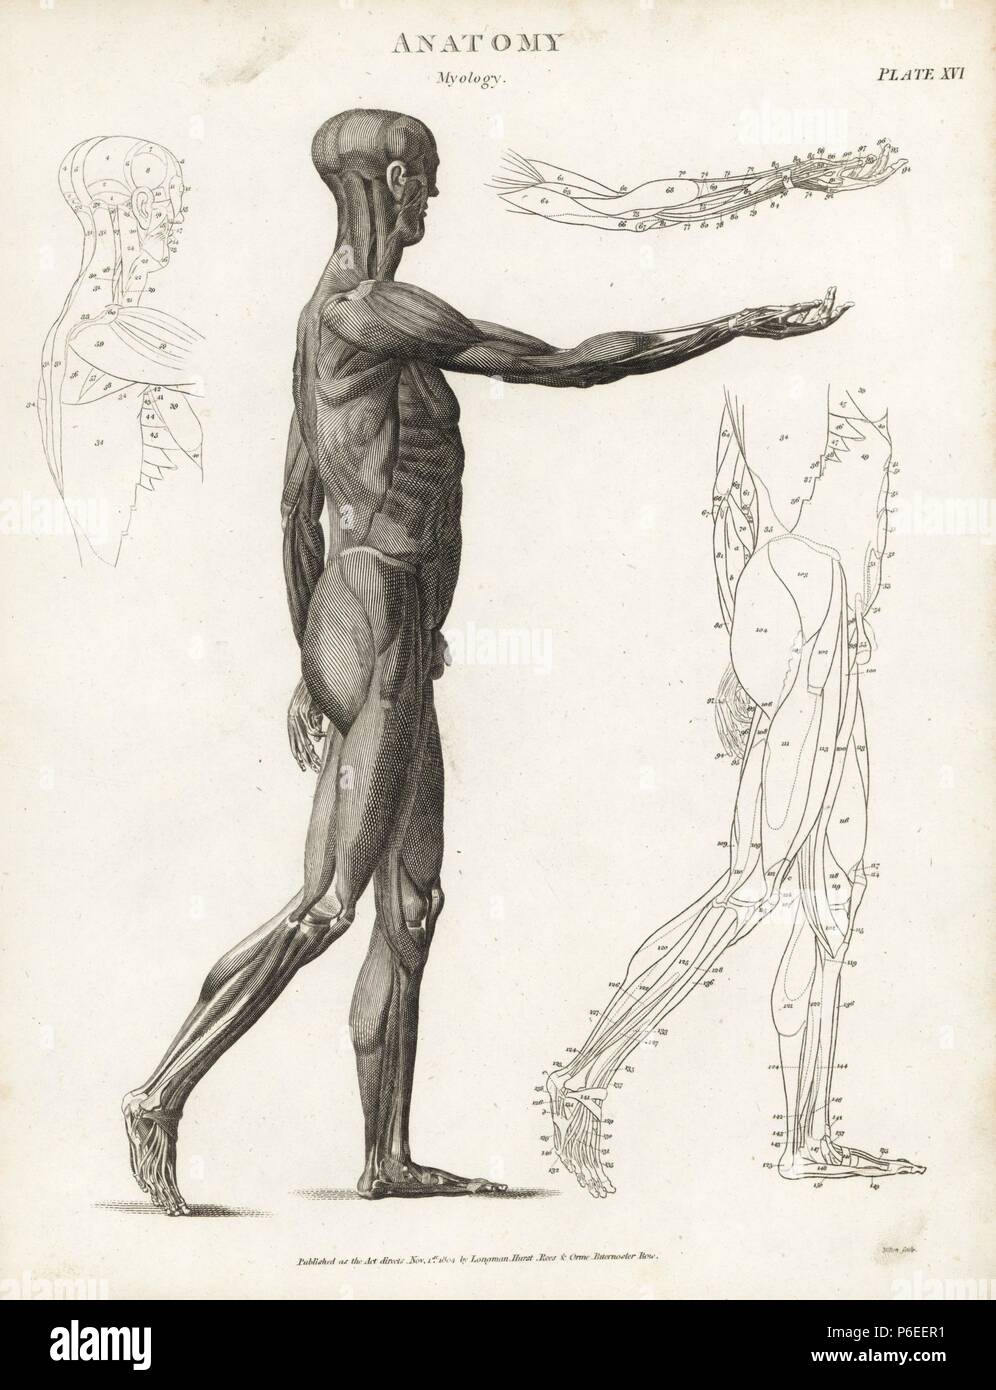 Anatomy Of Human Musculature Copperplate Engraving By Milton From